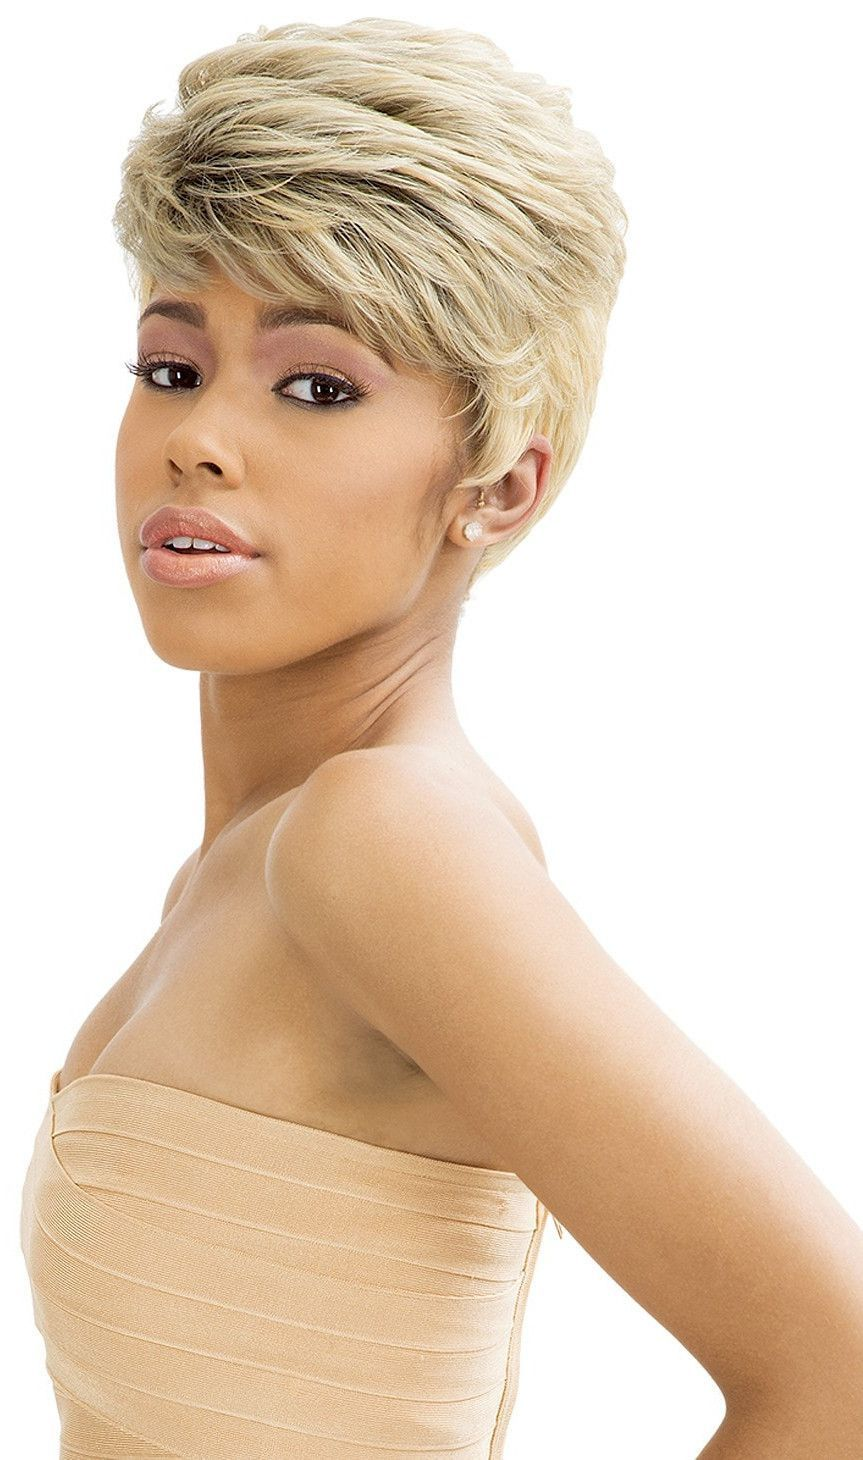 New Born Free Cutie Collection Wig Ct73 Wigs Cutie Collection